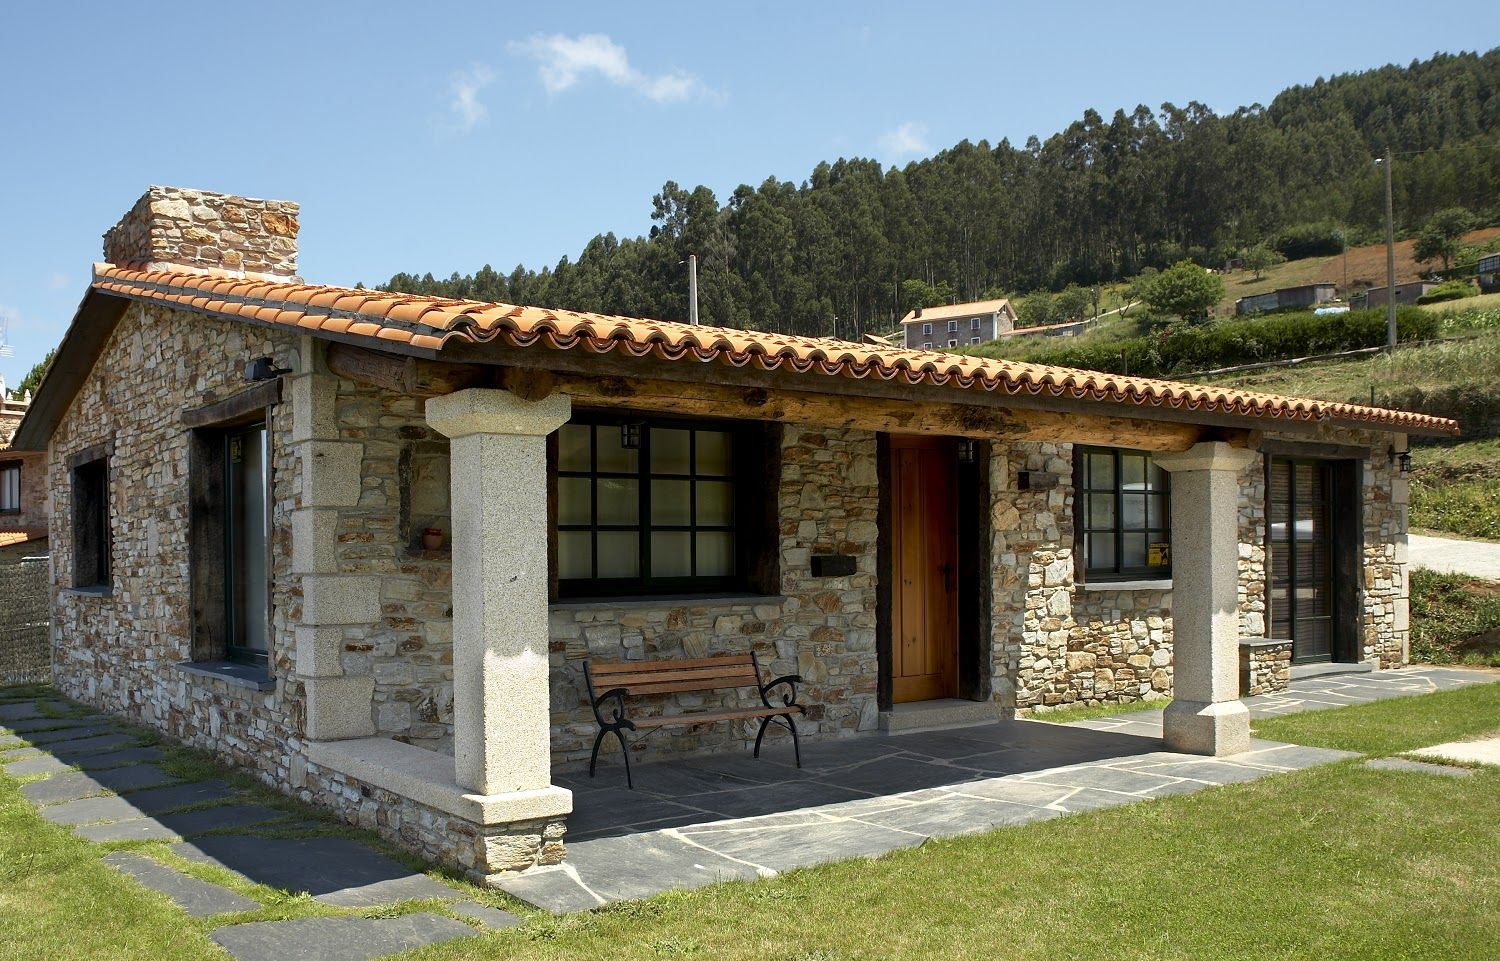 17 photo of 27 for casas de campo rusticas peque as for Disenos de casas pequenas con jardin